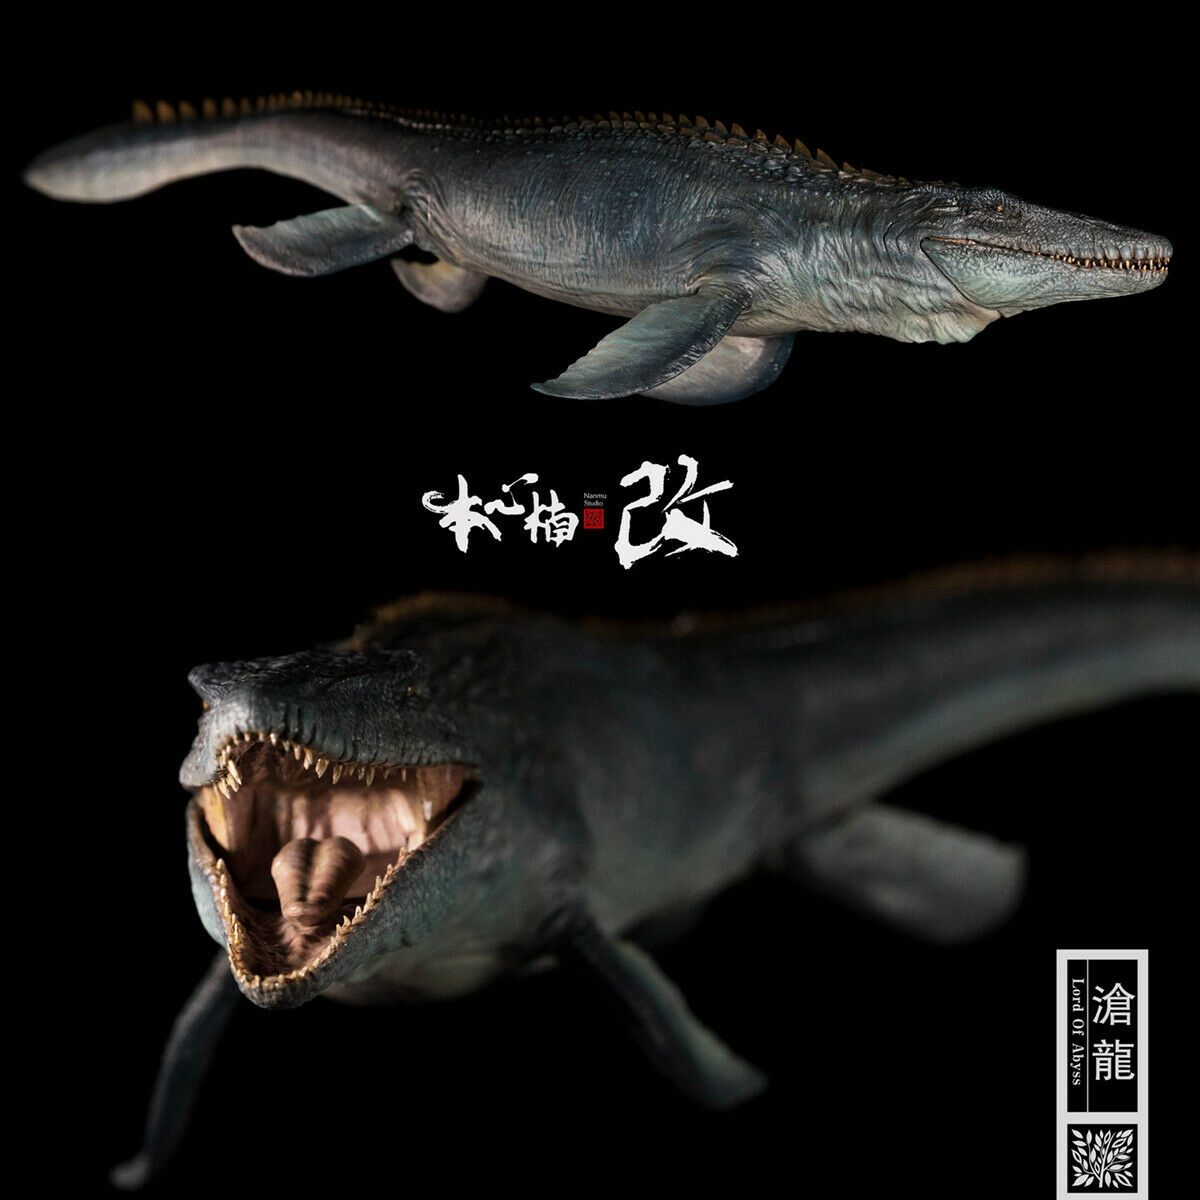 IN STOCK! 24.8 In Nanmu Studio 1/35 Mosasaurus Original Figure Lord Of Abyss Dinosaur Collector Animal Adults Toys Gift Statue